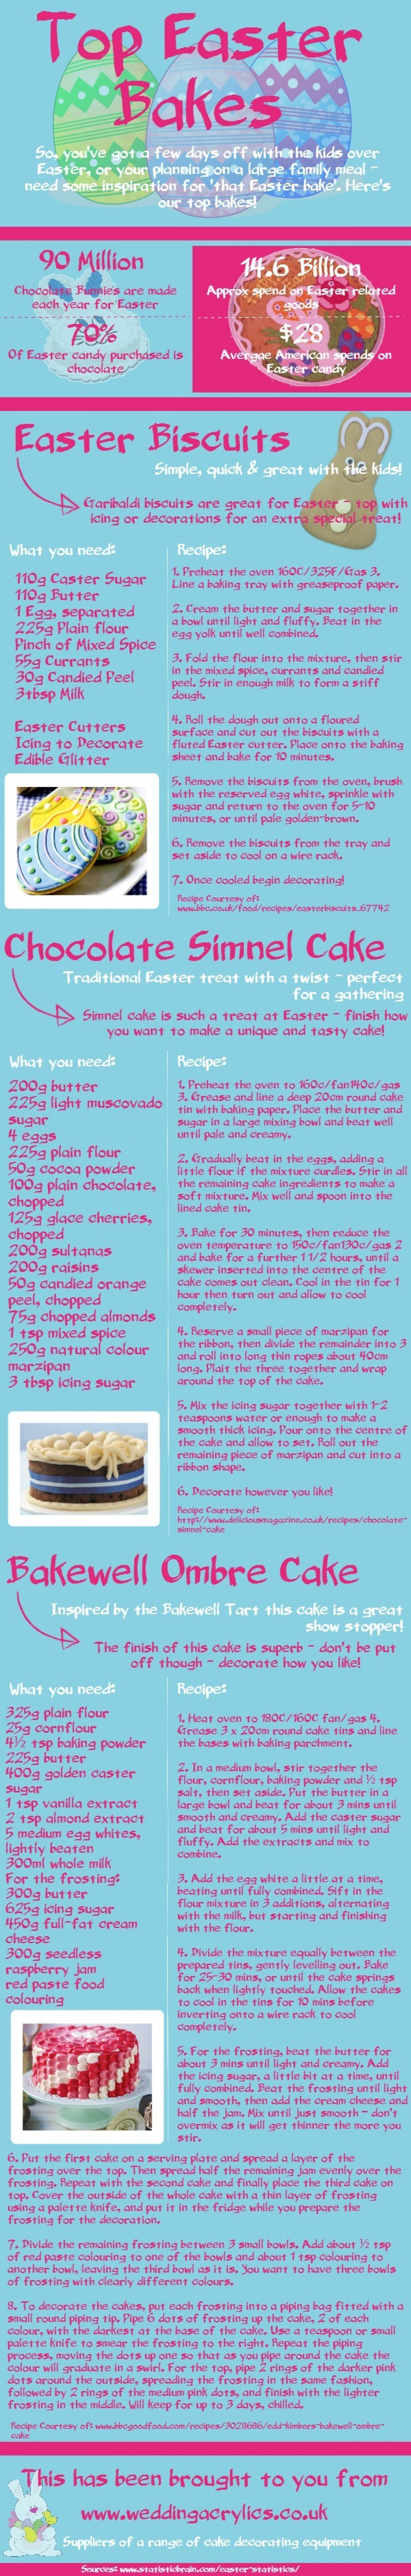 Top Easter Bakes Infographic